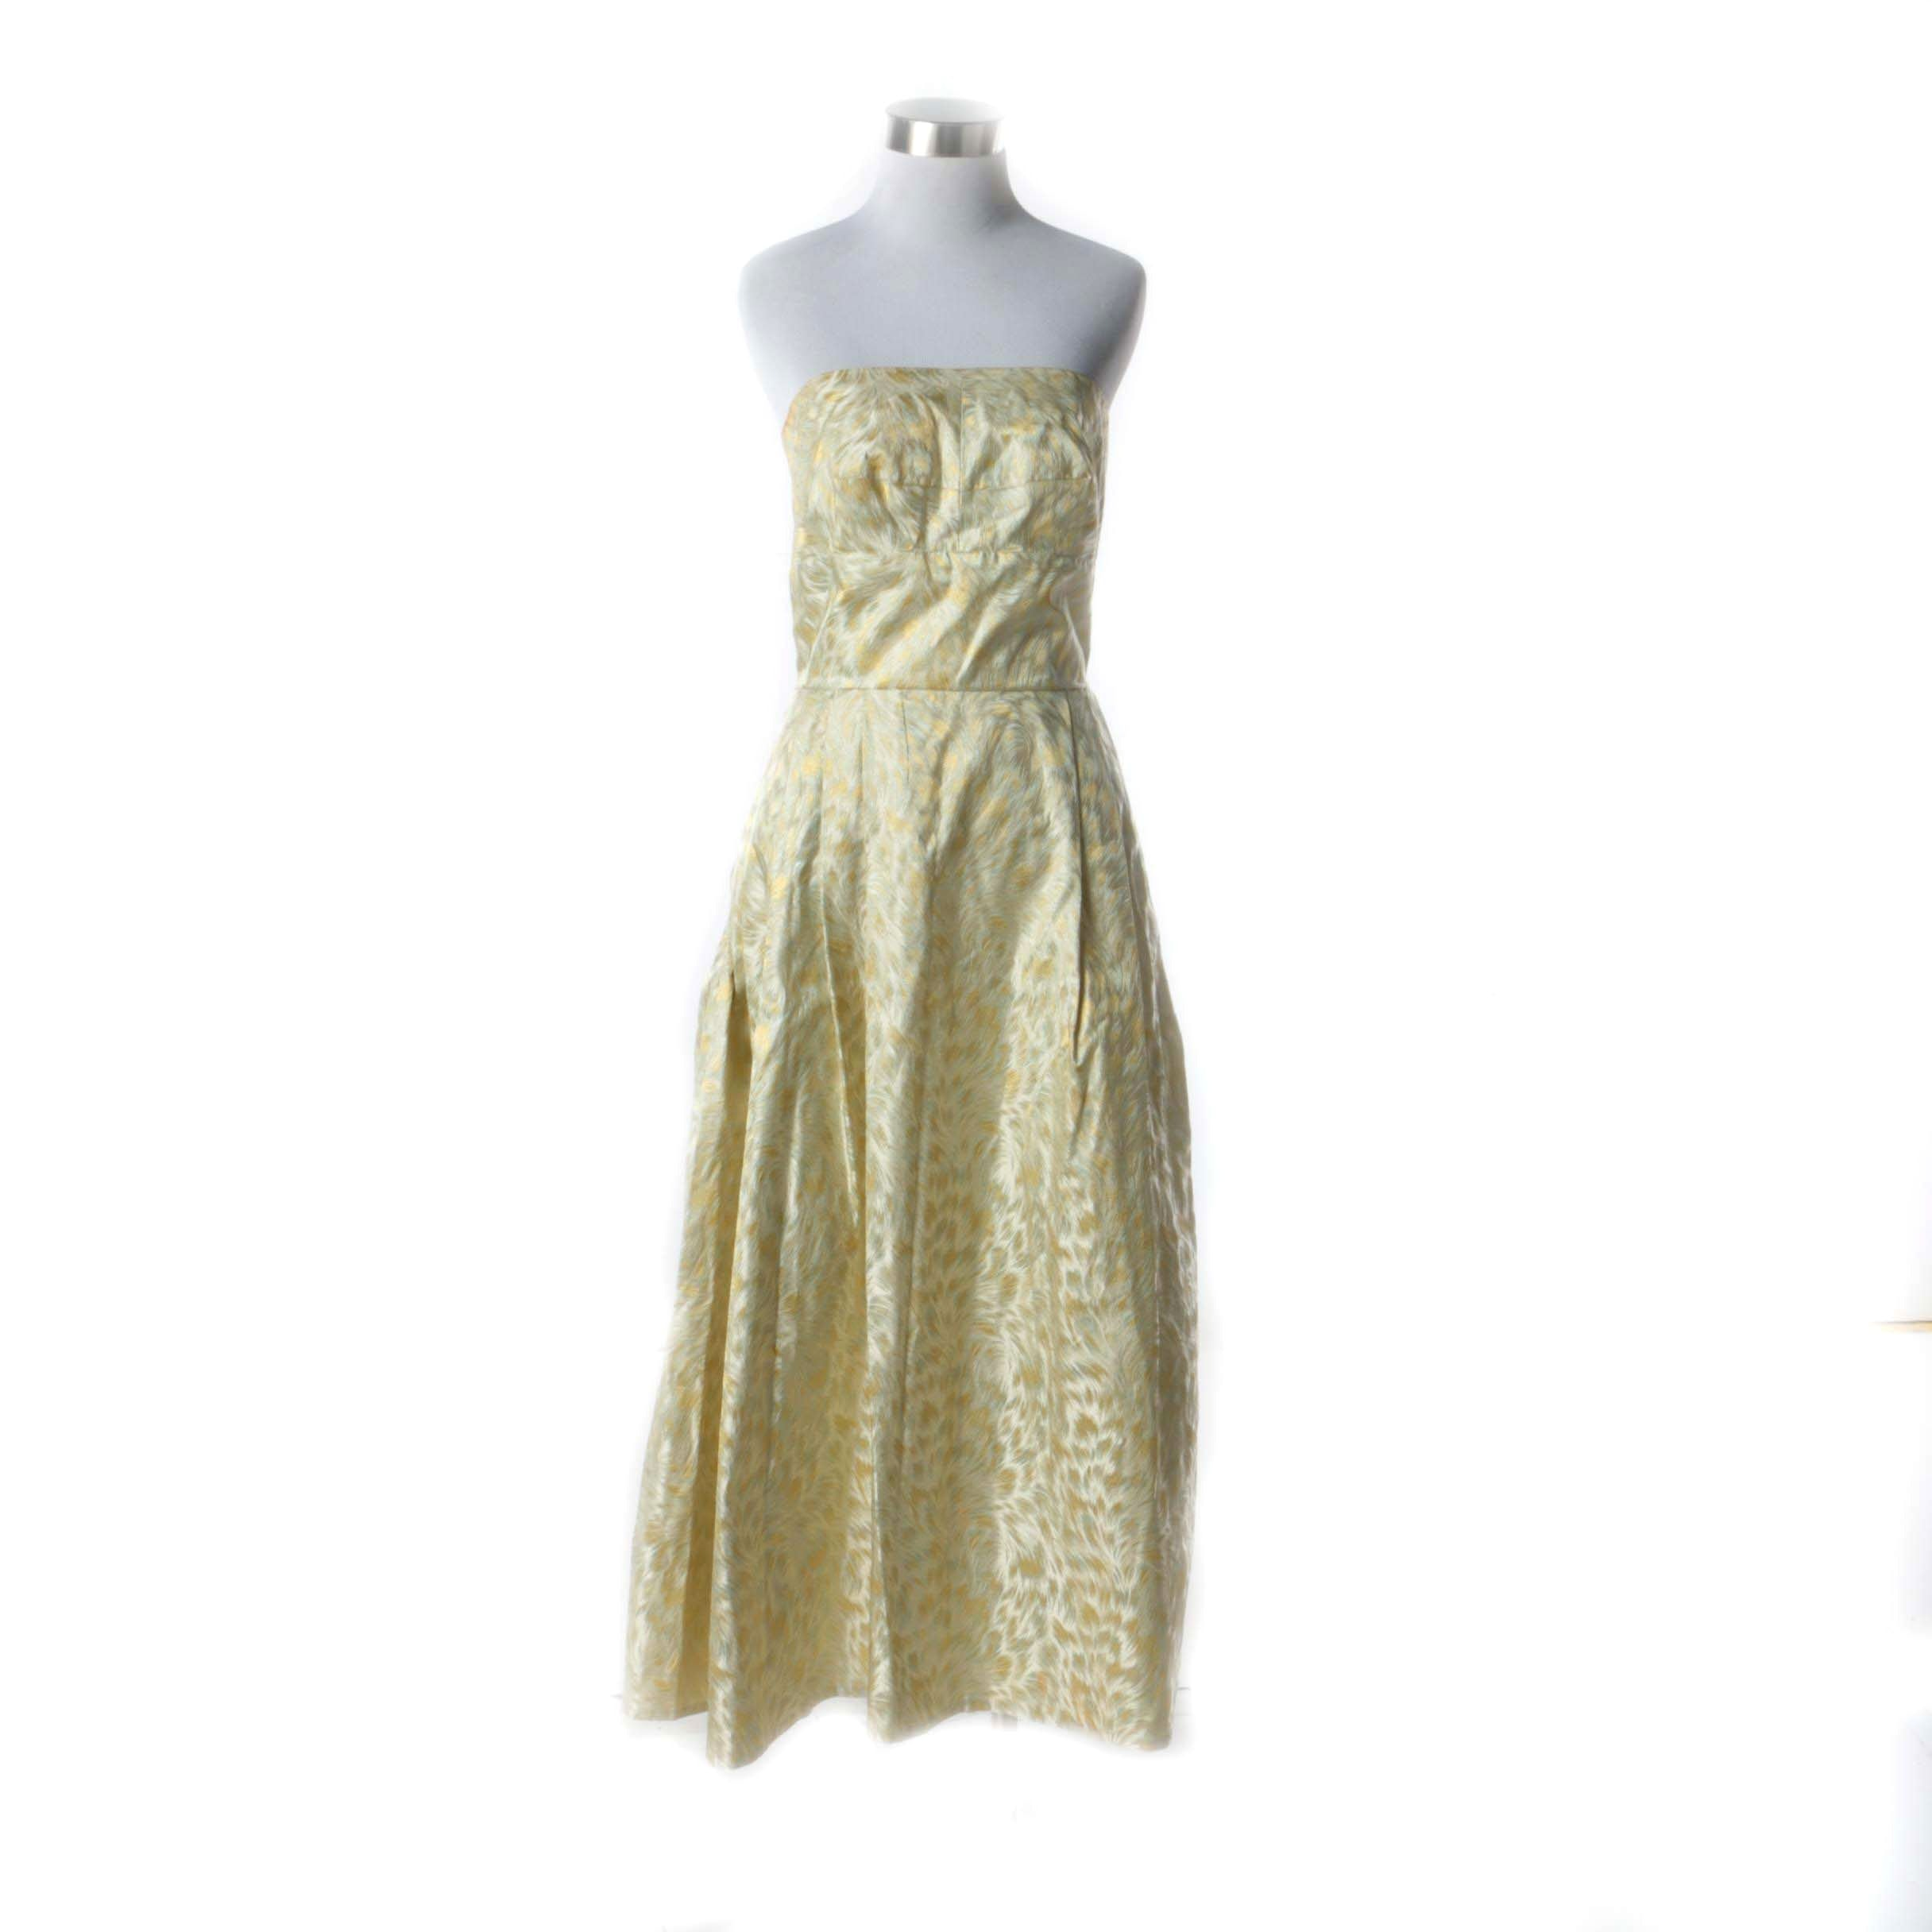 1950s Vintage Gold, Citrine and Green Silk Abstract Print Midi Cocktail Dress